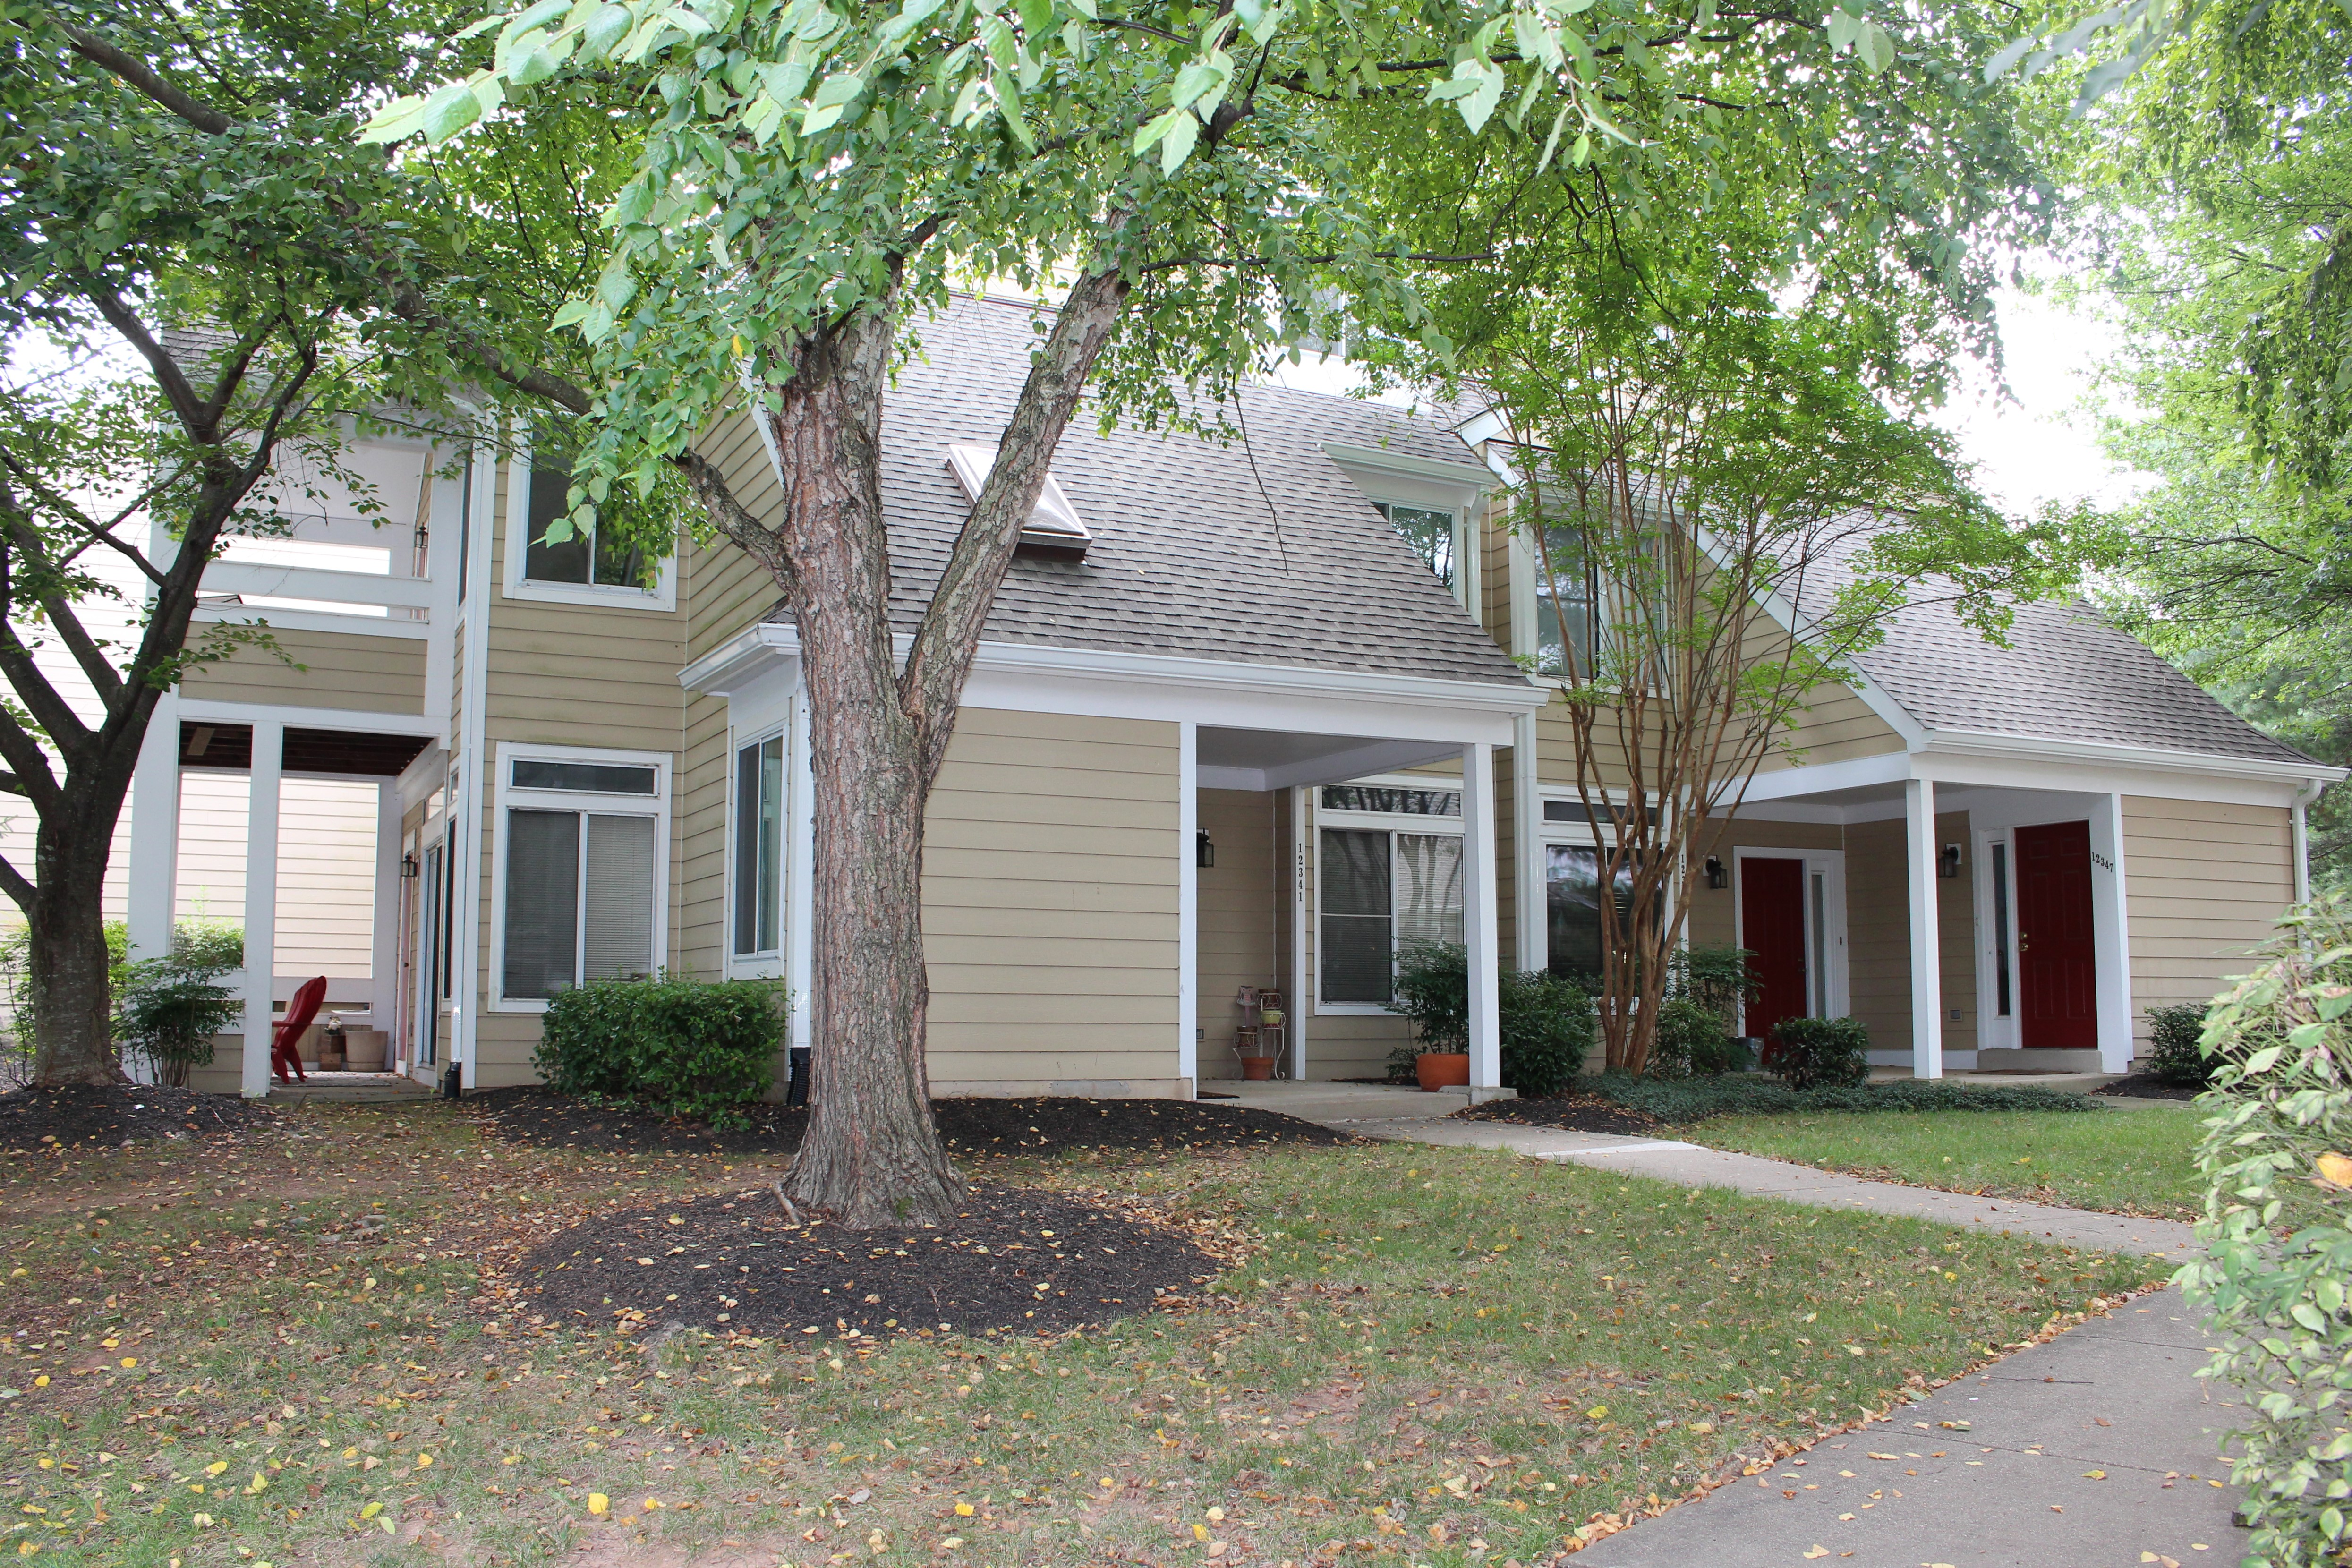 Move In Ready Garden Style Condo In Fairfax! Spacious Master BDR. Beautiful  Spiral Staircase In Living Room Leads To Loft. Renovated Kitchen U0026 Bath.